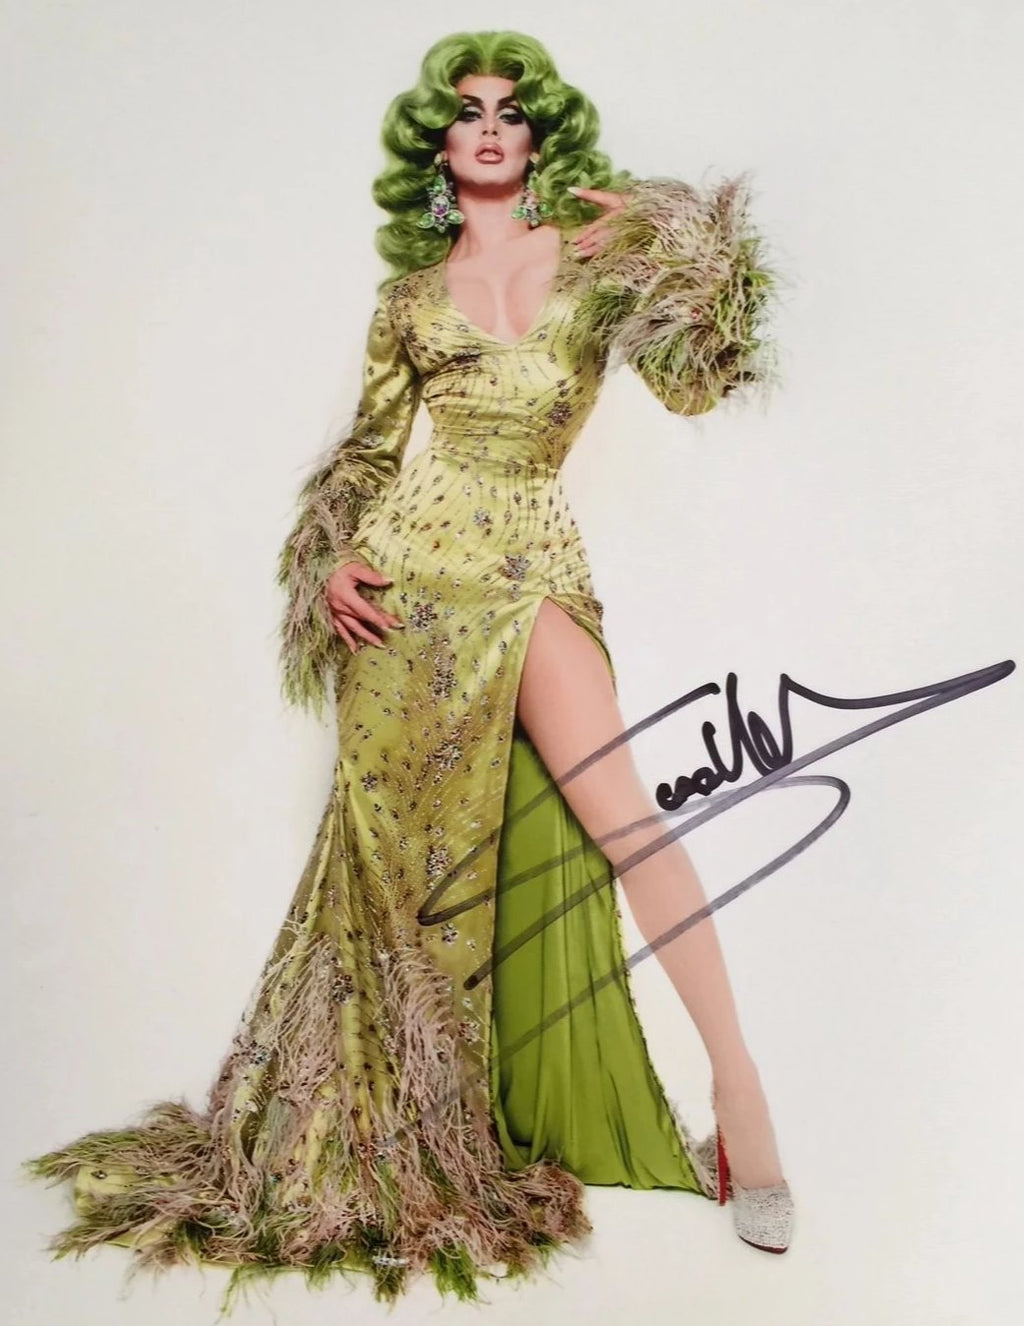 Signed Scarlet Envy green print